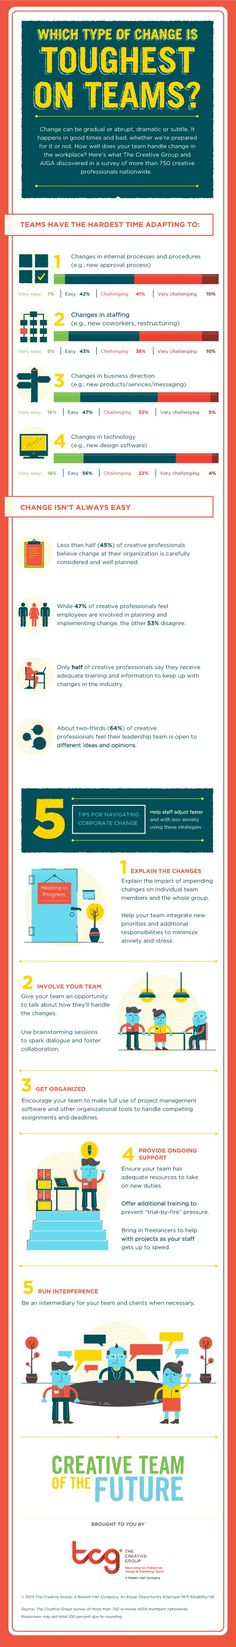 General Management - How Marketers Feel About Workplace Changes [Infographic] : MarketingProfs Article